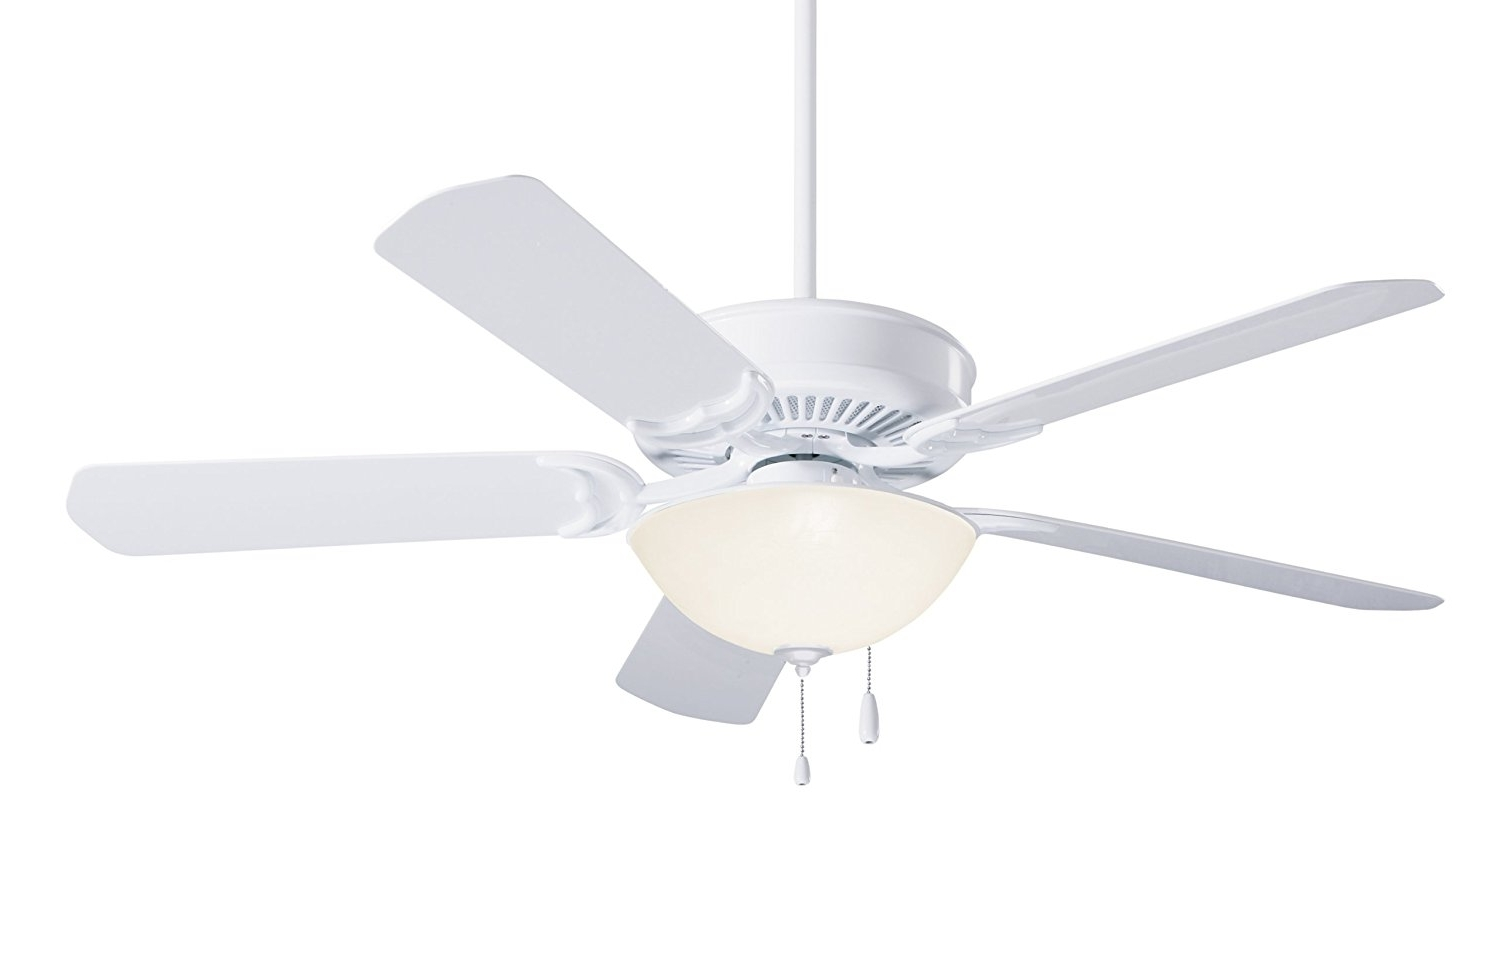 Well Known Ceiling Fan: Breathtaking Ceiling Fan Cfm Ideas Ceiling Fans With In Outdoor Ceiling Fans With High Cfm (View 20 of 20)